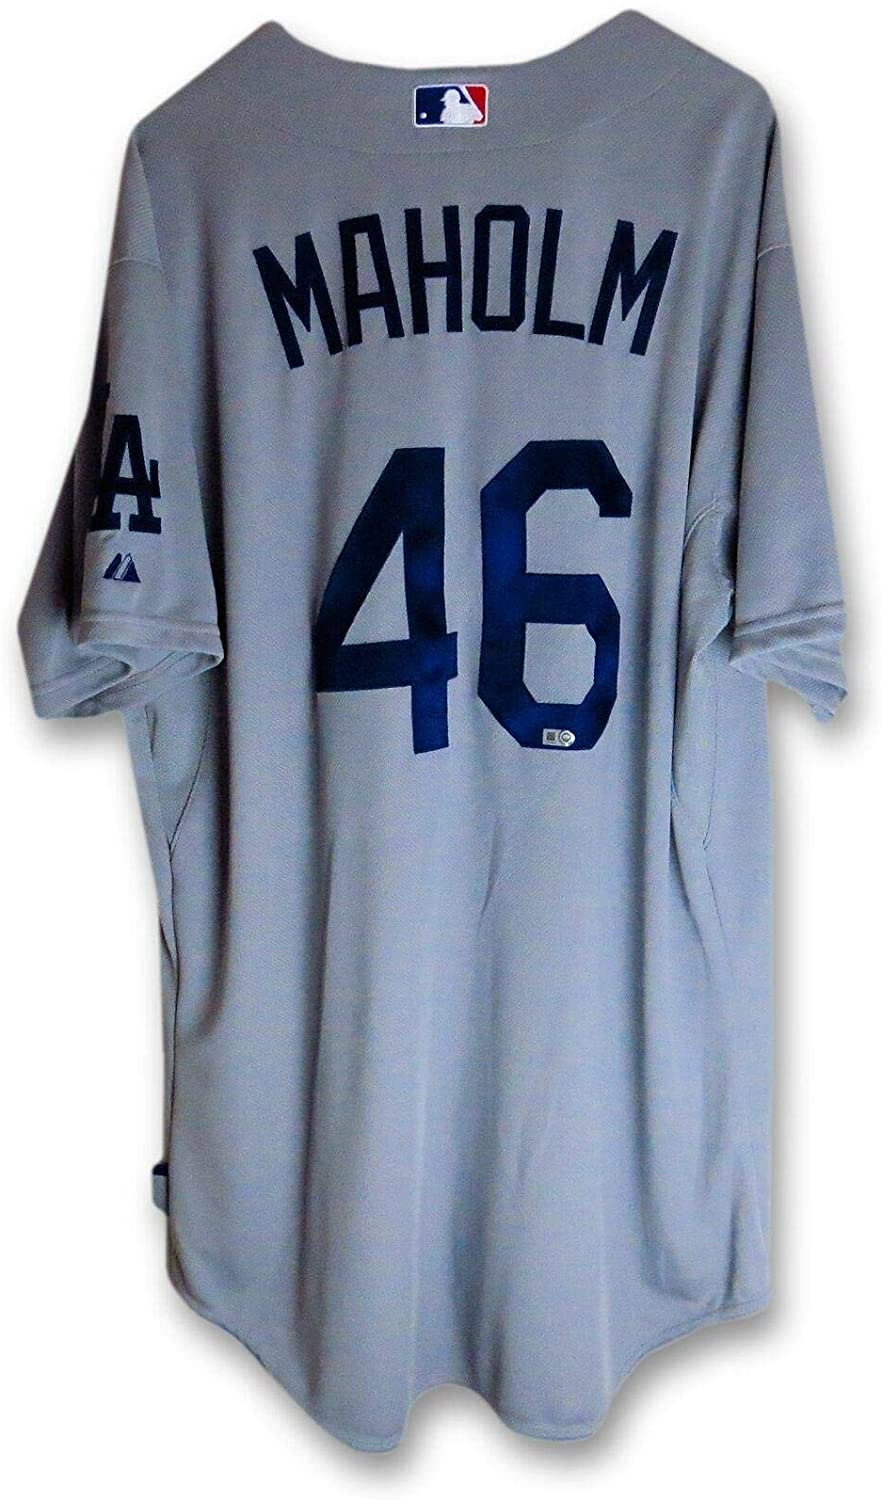 Paul Maholm Team Issued Jersey Los Angeles Dodgers 2014 Road Gray #46 MLB Holo - MLB Game Used Jerseys